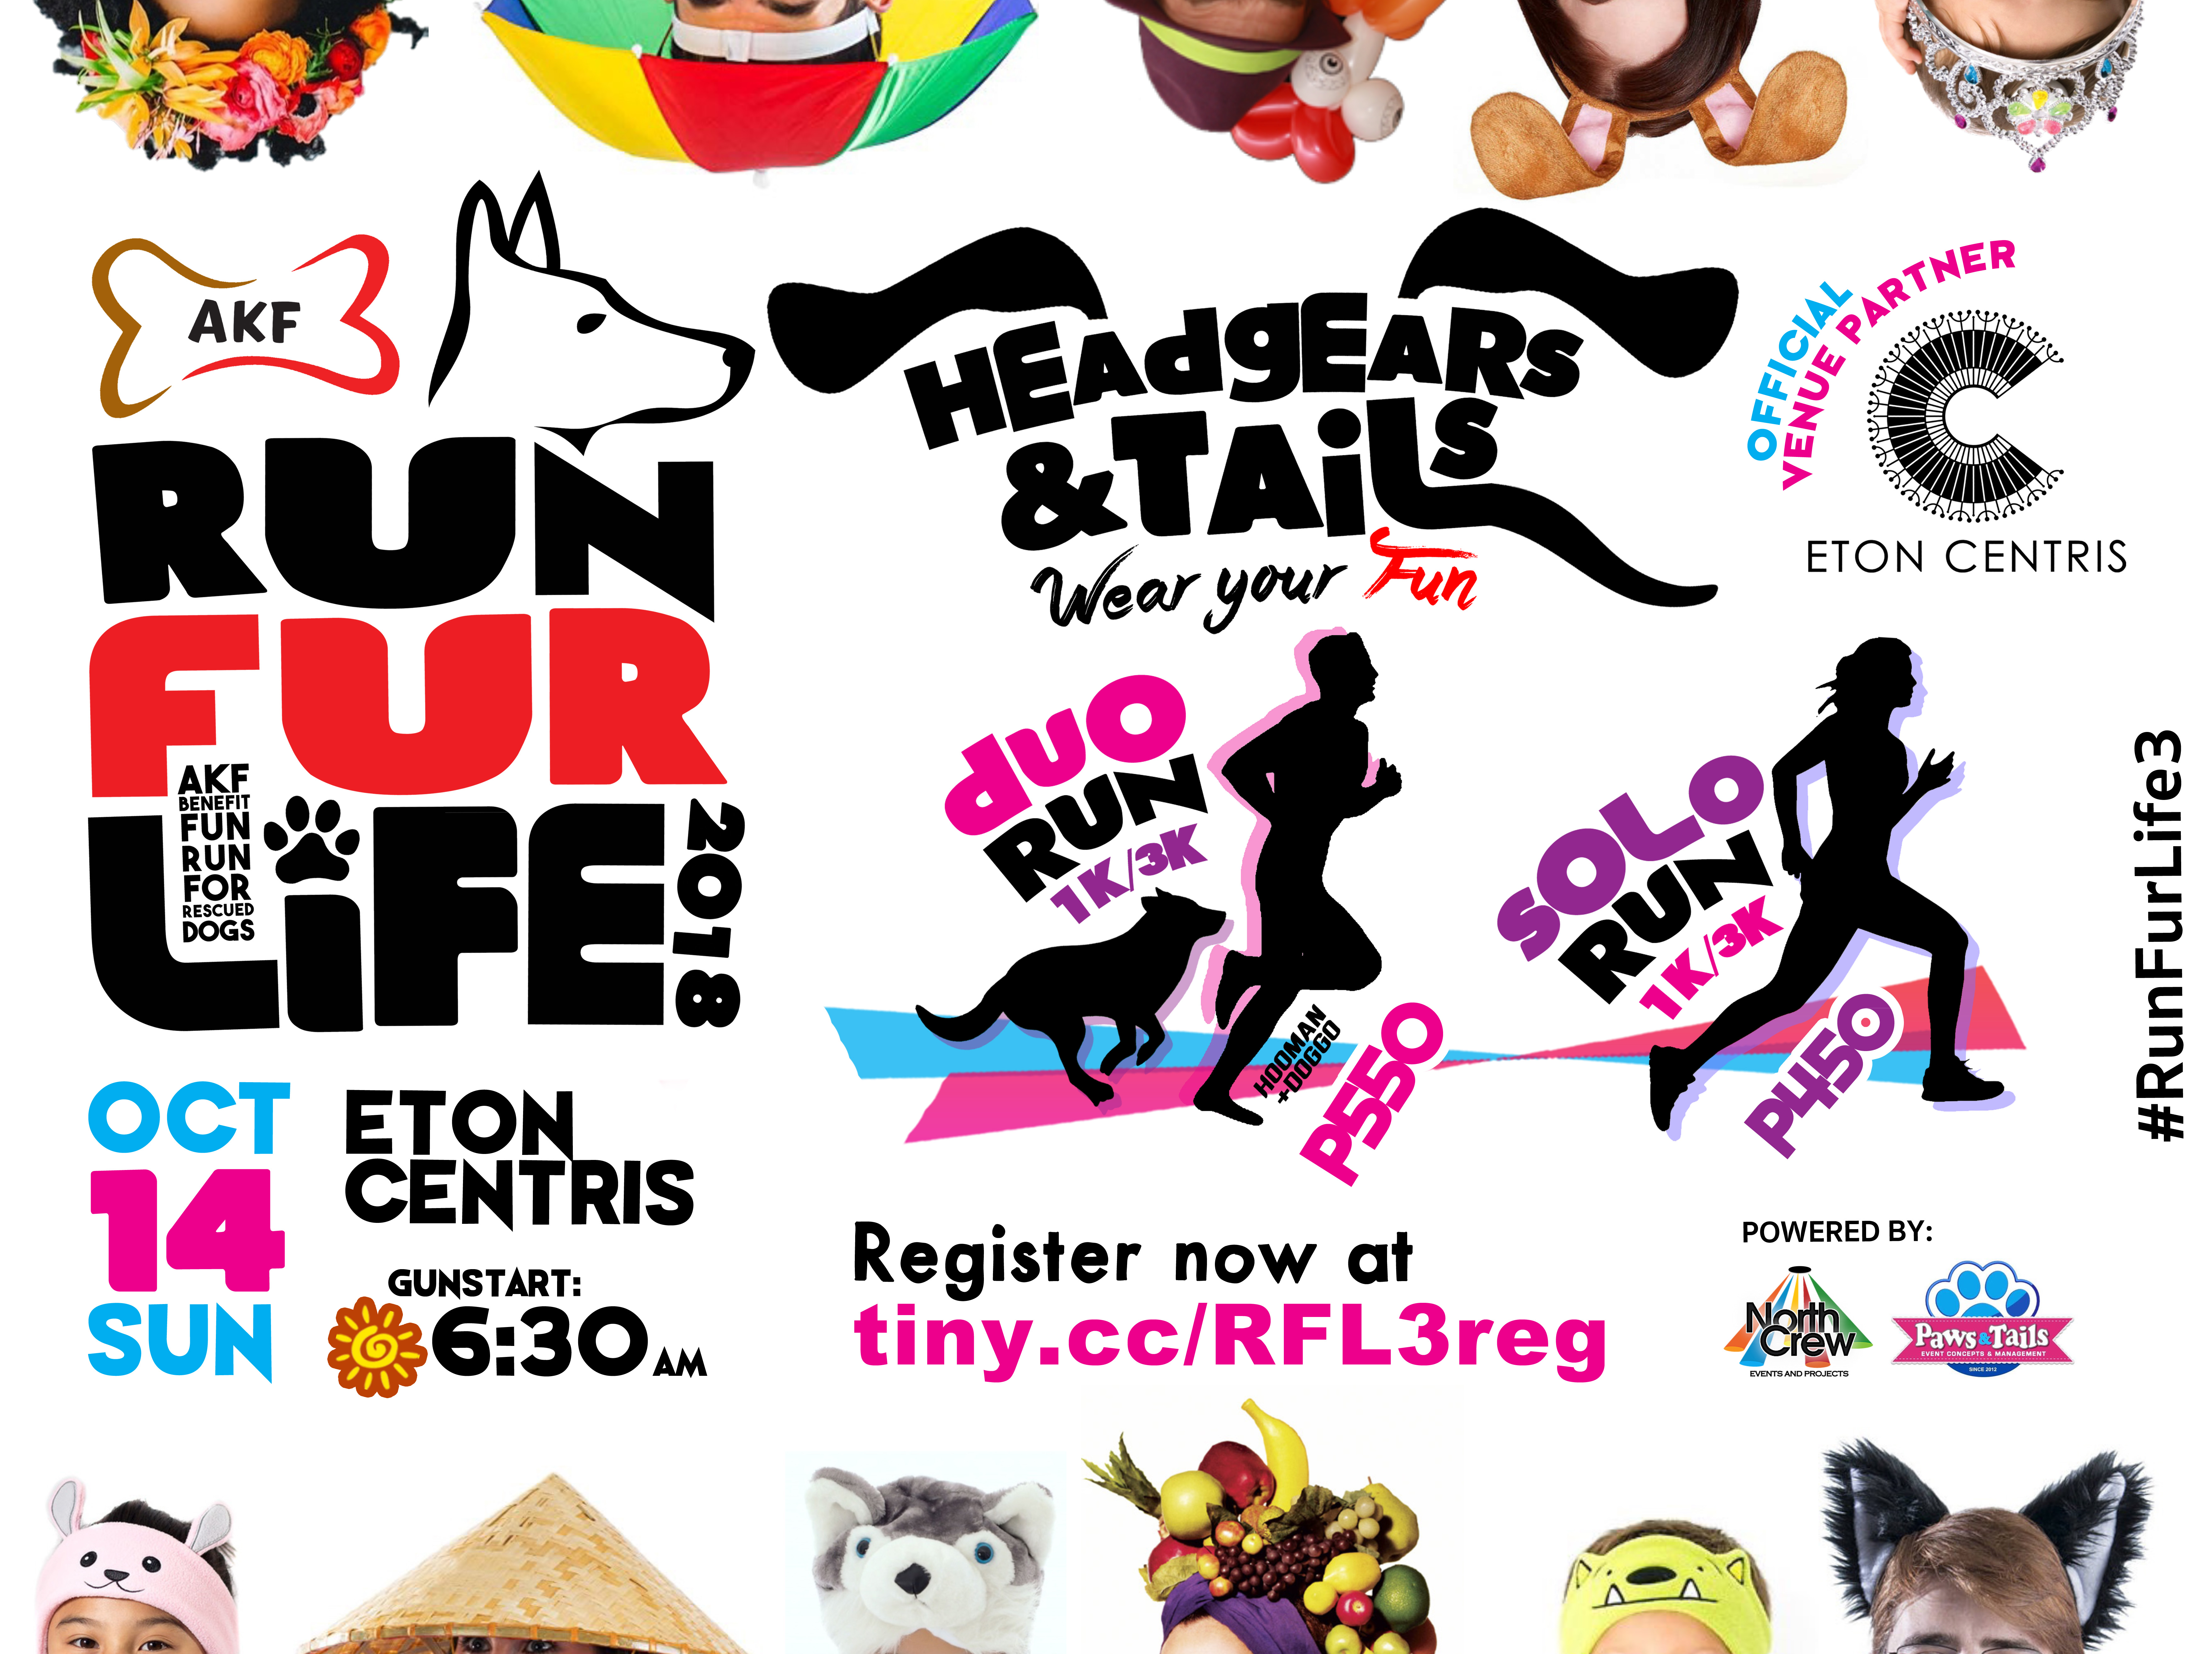 Run Fur Life 3: Headgears and Tails Edition